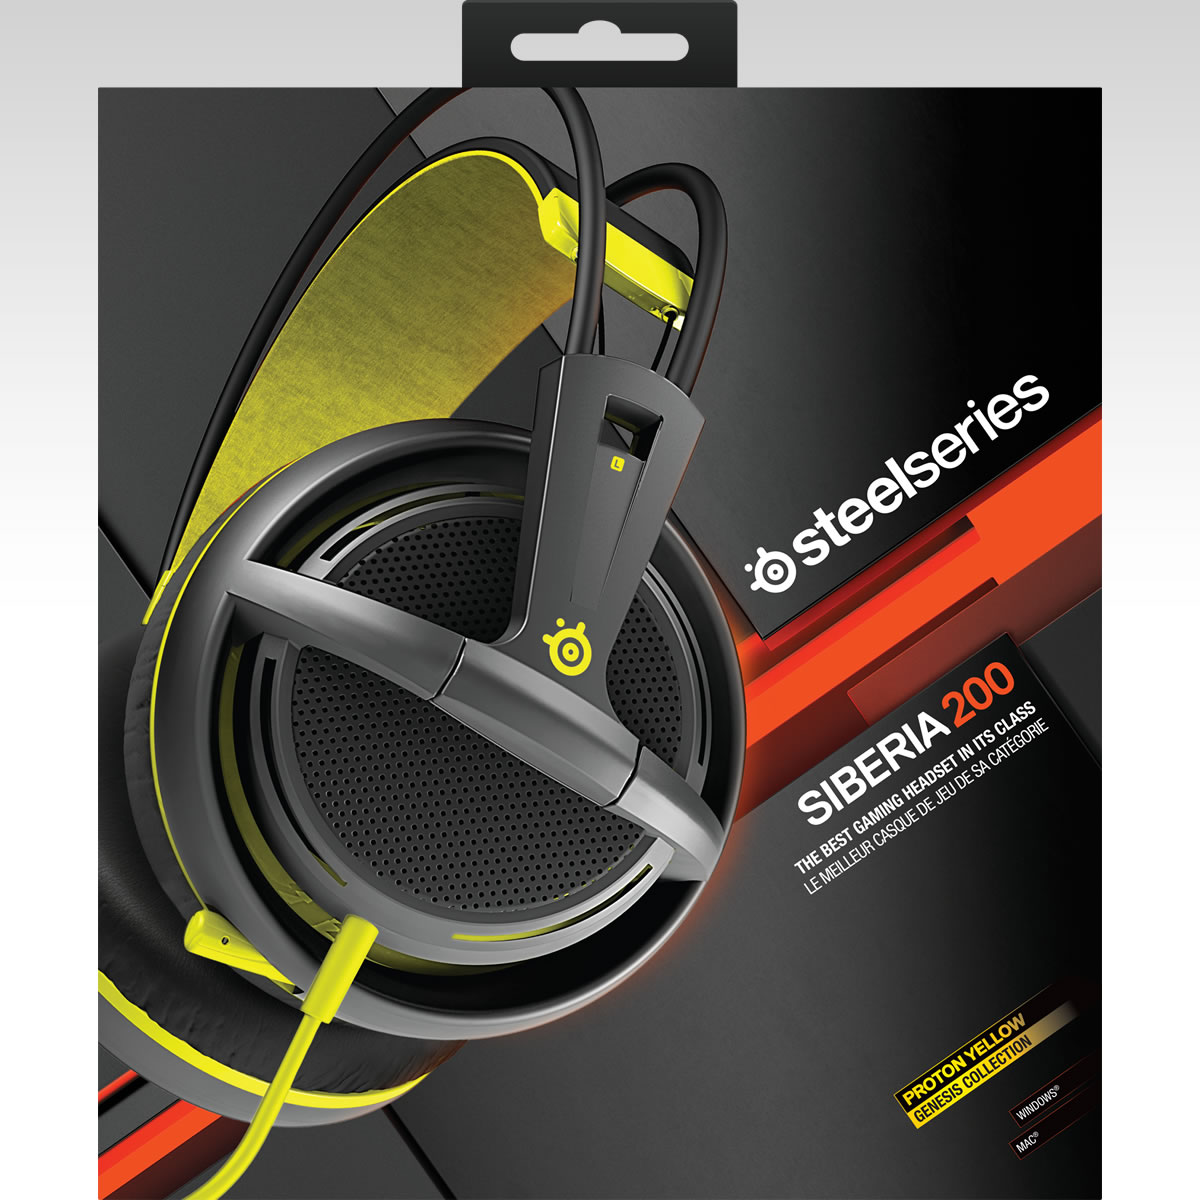 STEELSERIES - HEADSET SIBERIA 200 PROTON YELLOW 51138 (PC, Mac, PS4, Mobile)